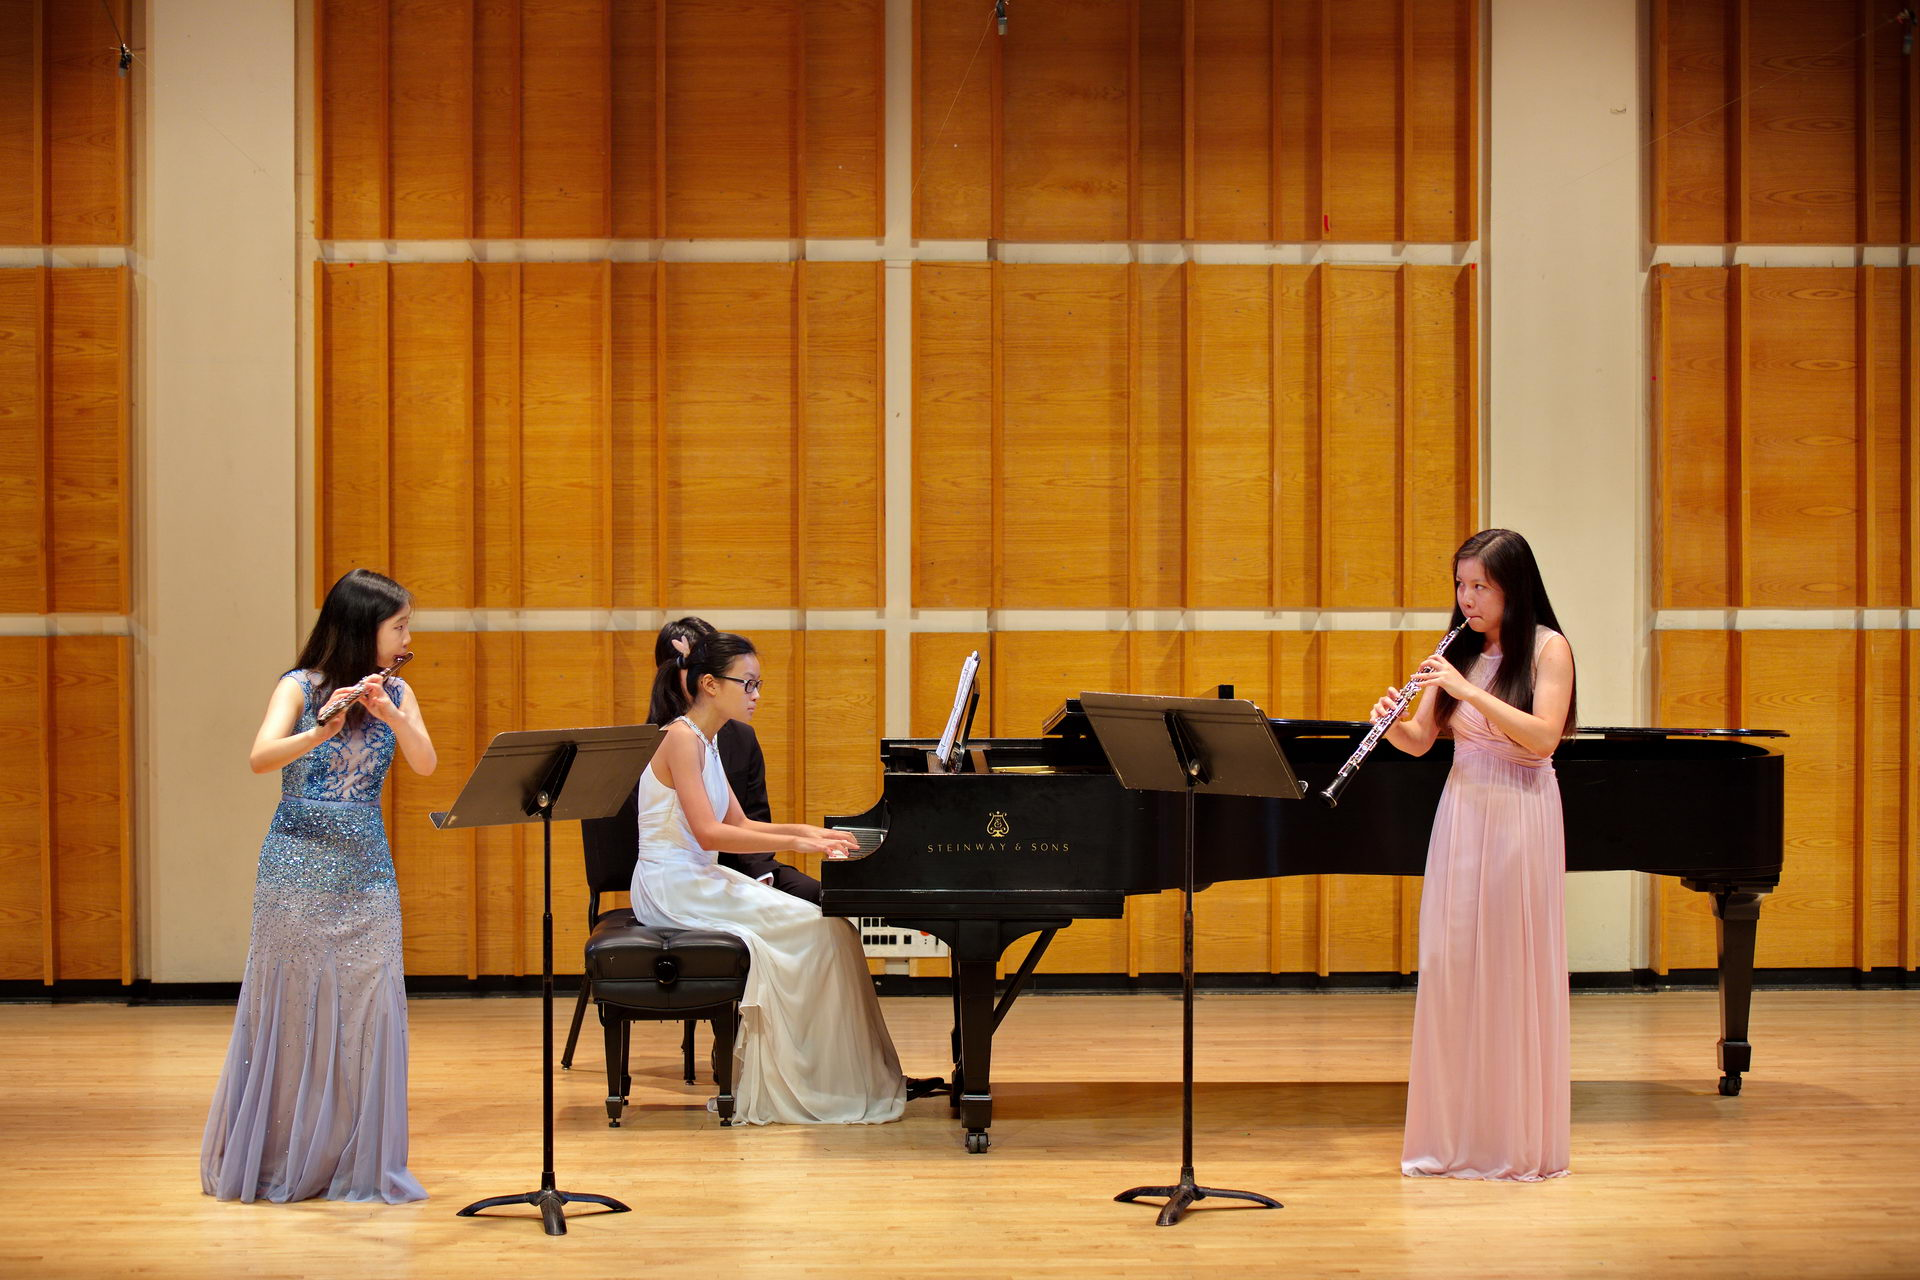 Jodie Chiou (flute), Jasmine Chang (piano), and Hsihsin Liu (oboe) performing the Goepfart Trio